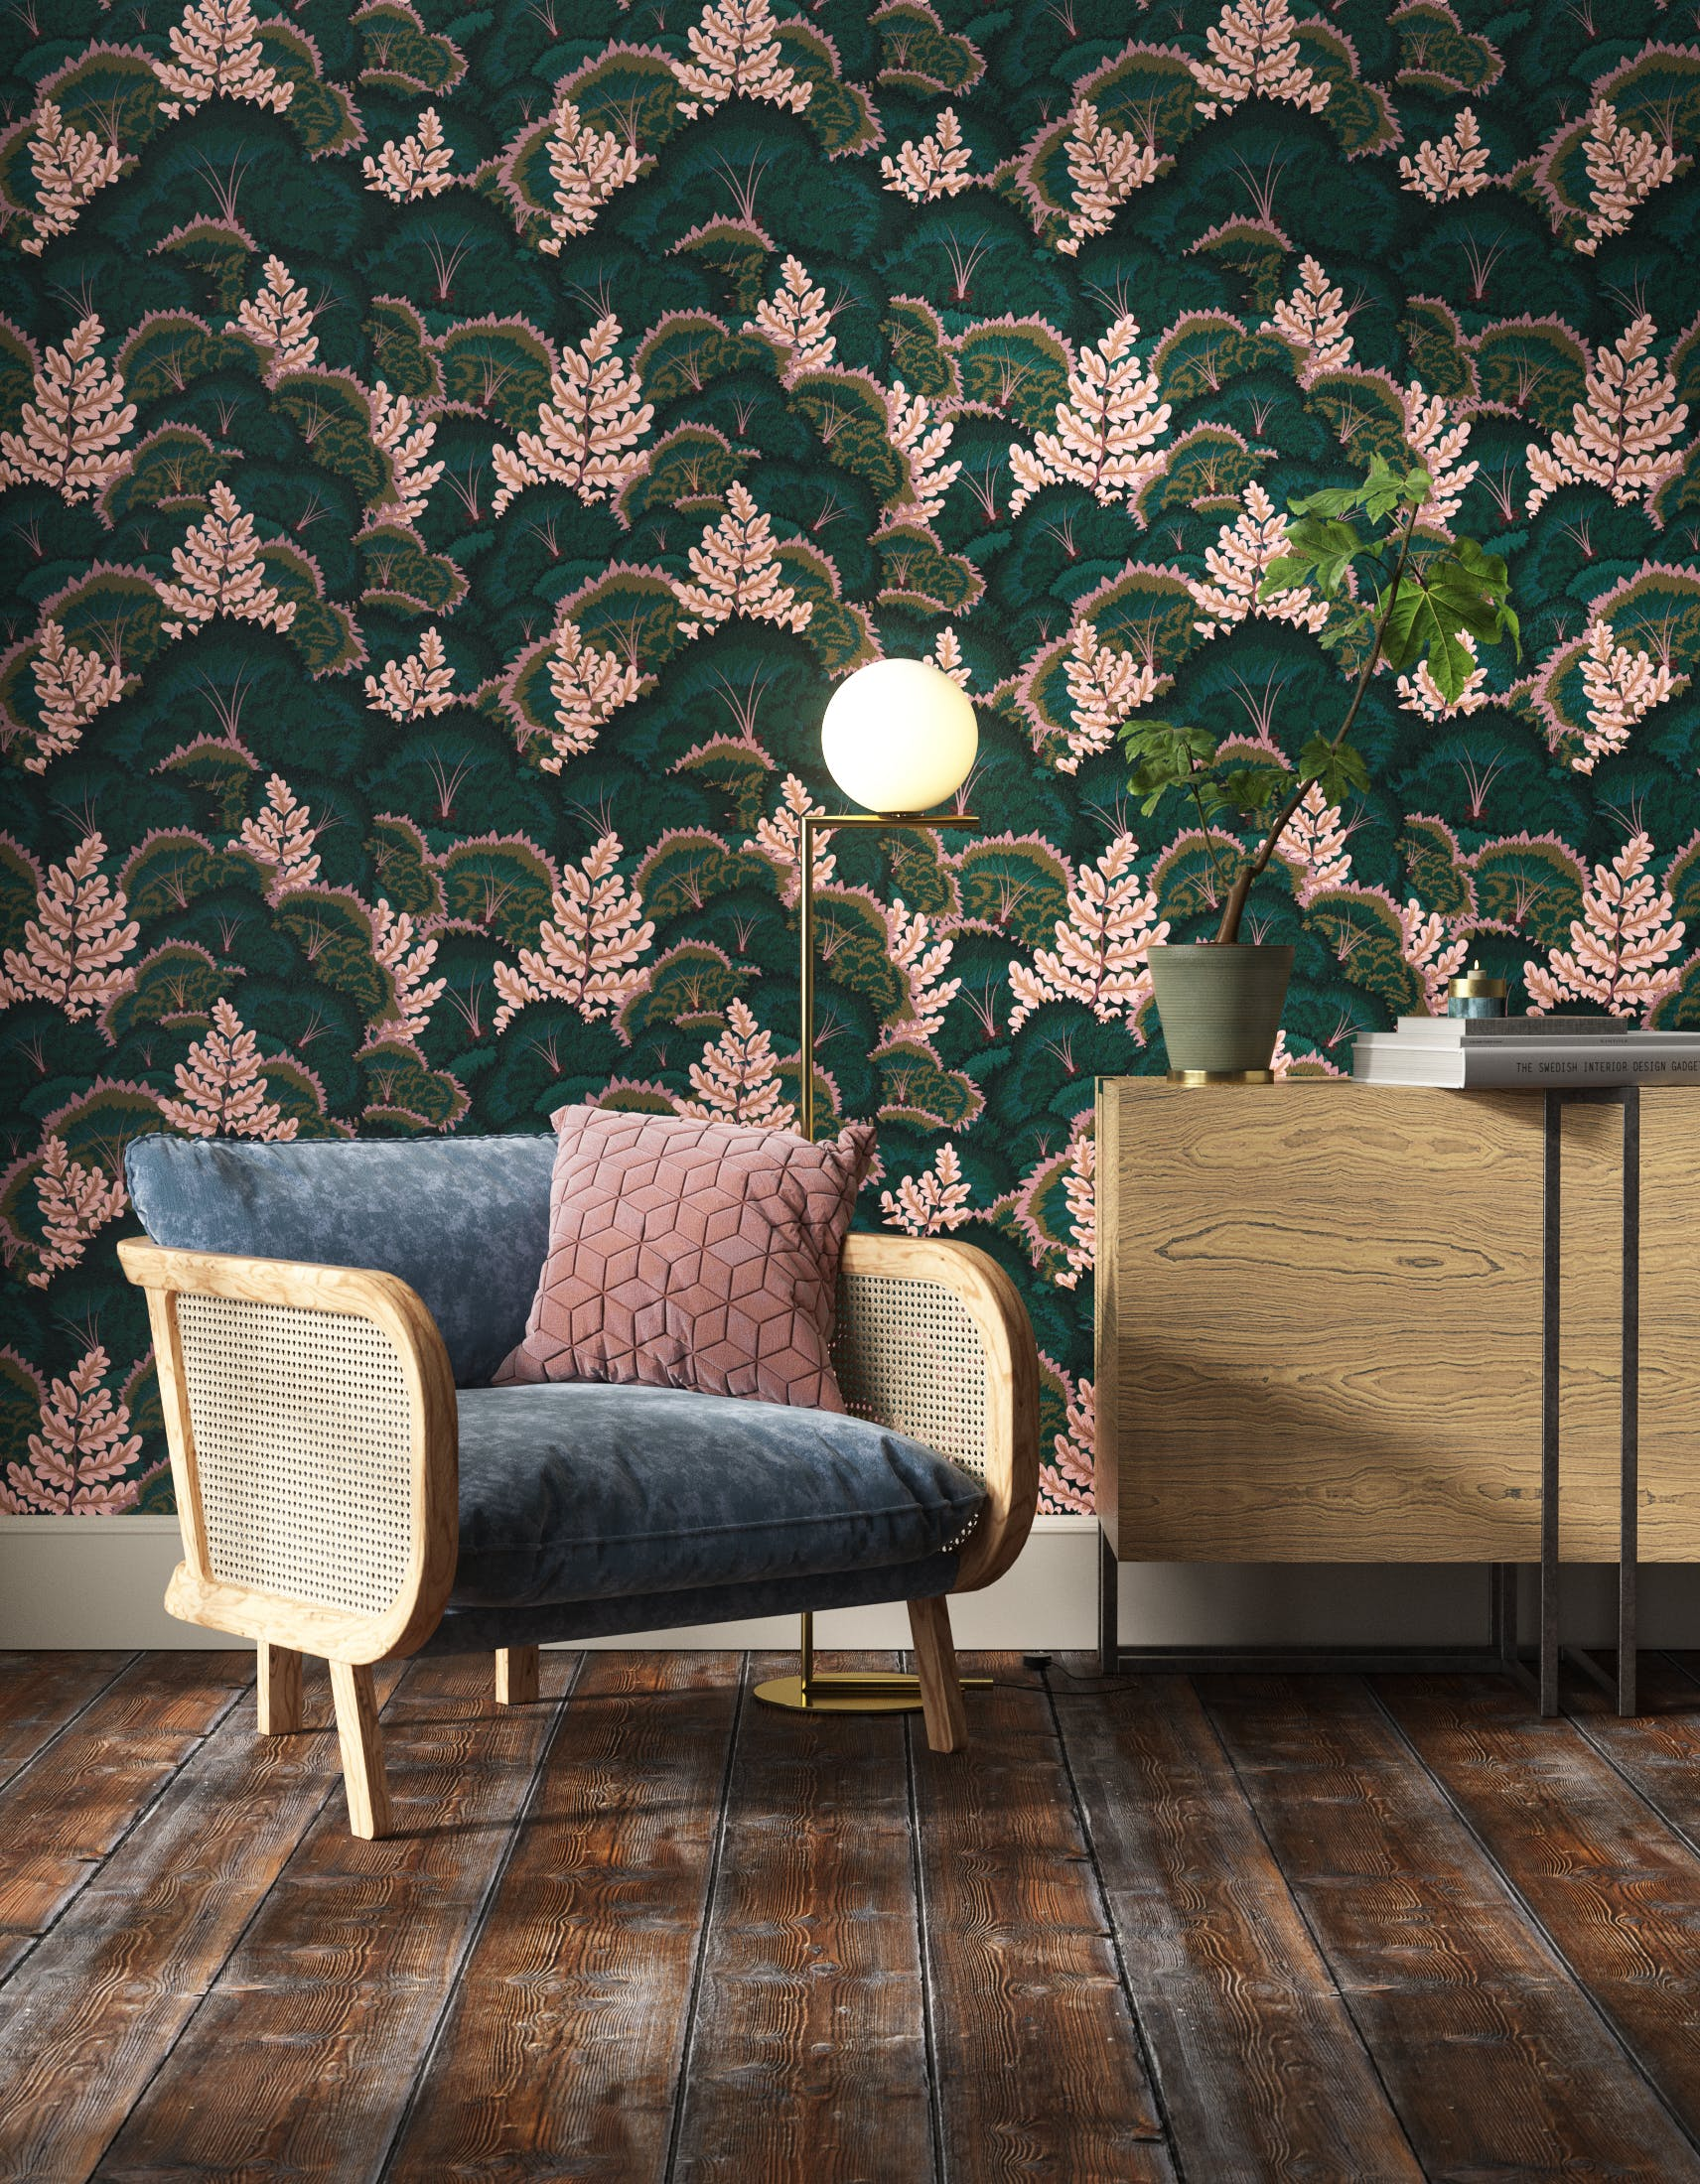 Living room decorated with Lick Electric Poppies 02, a green floral wallpaper